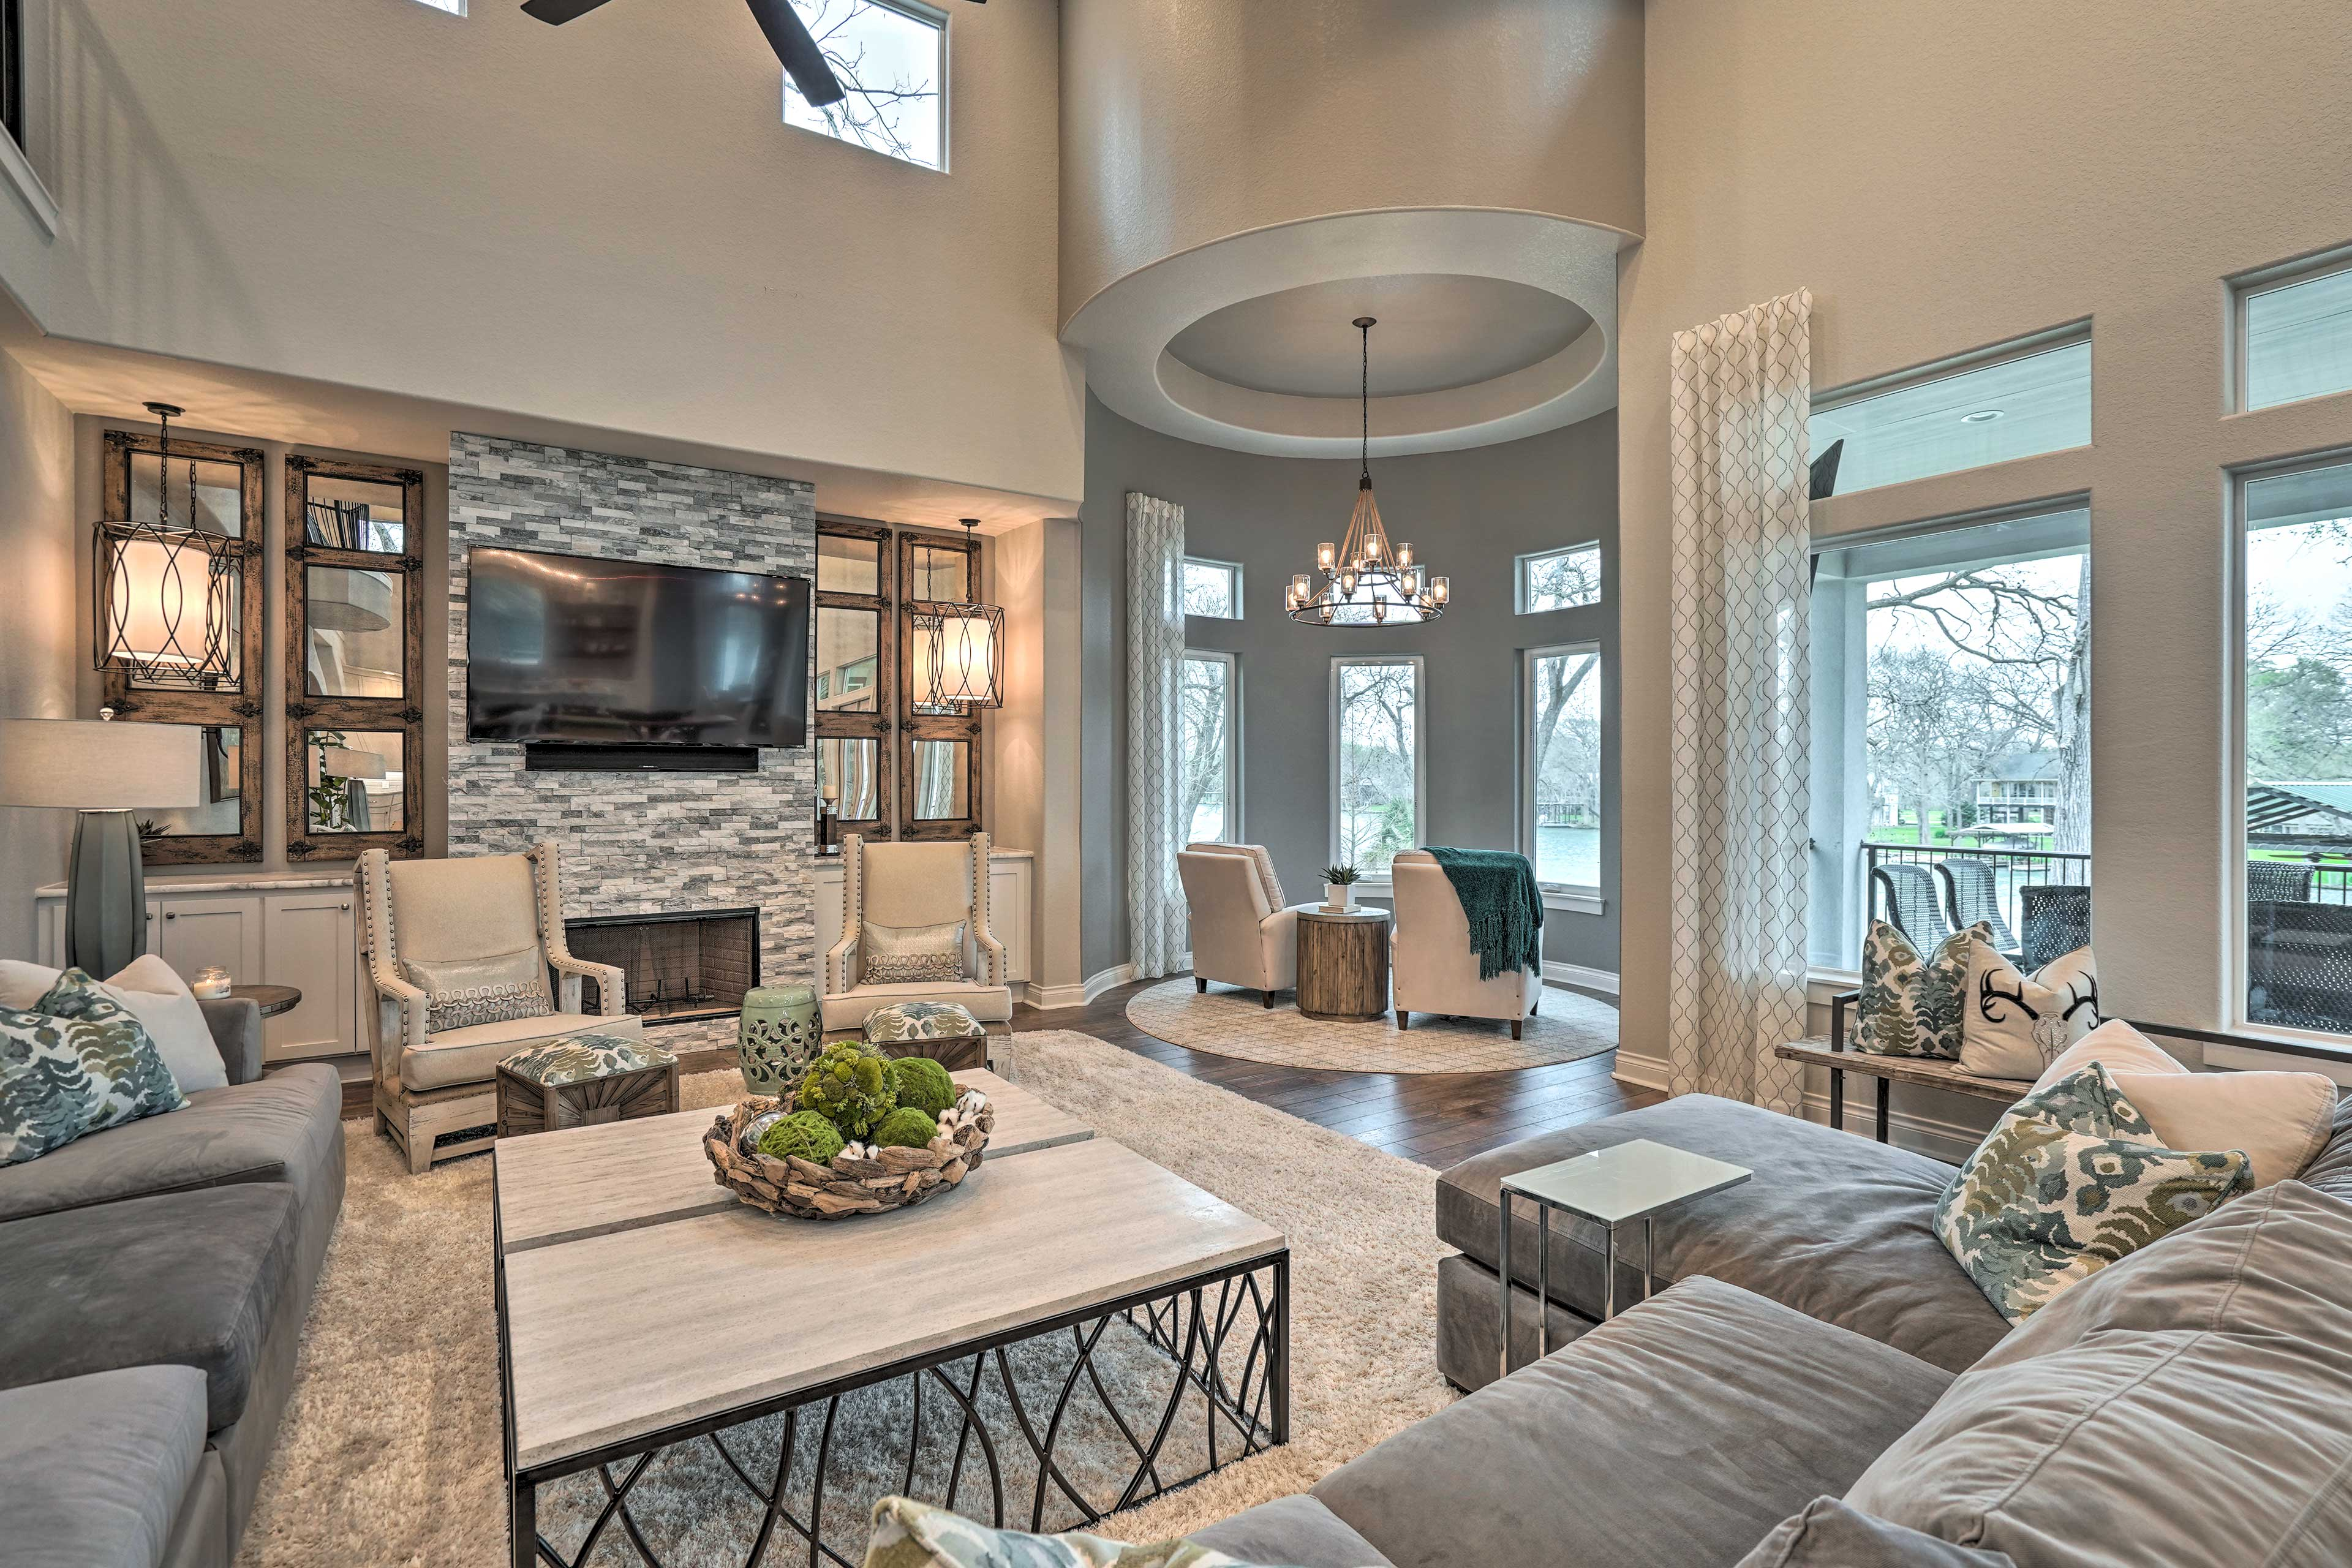 The home boasts 5,500 square feet of tasteful living space.